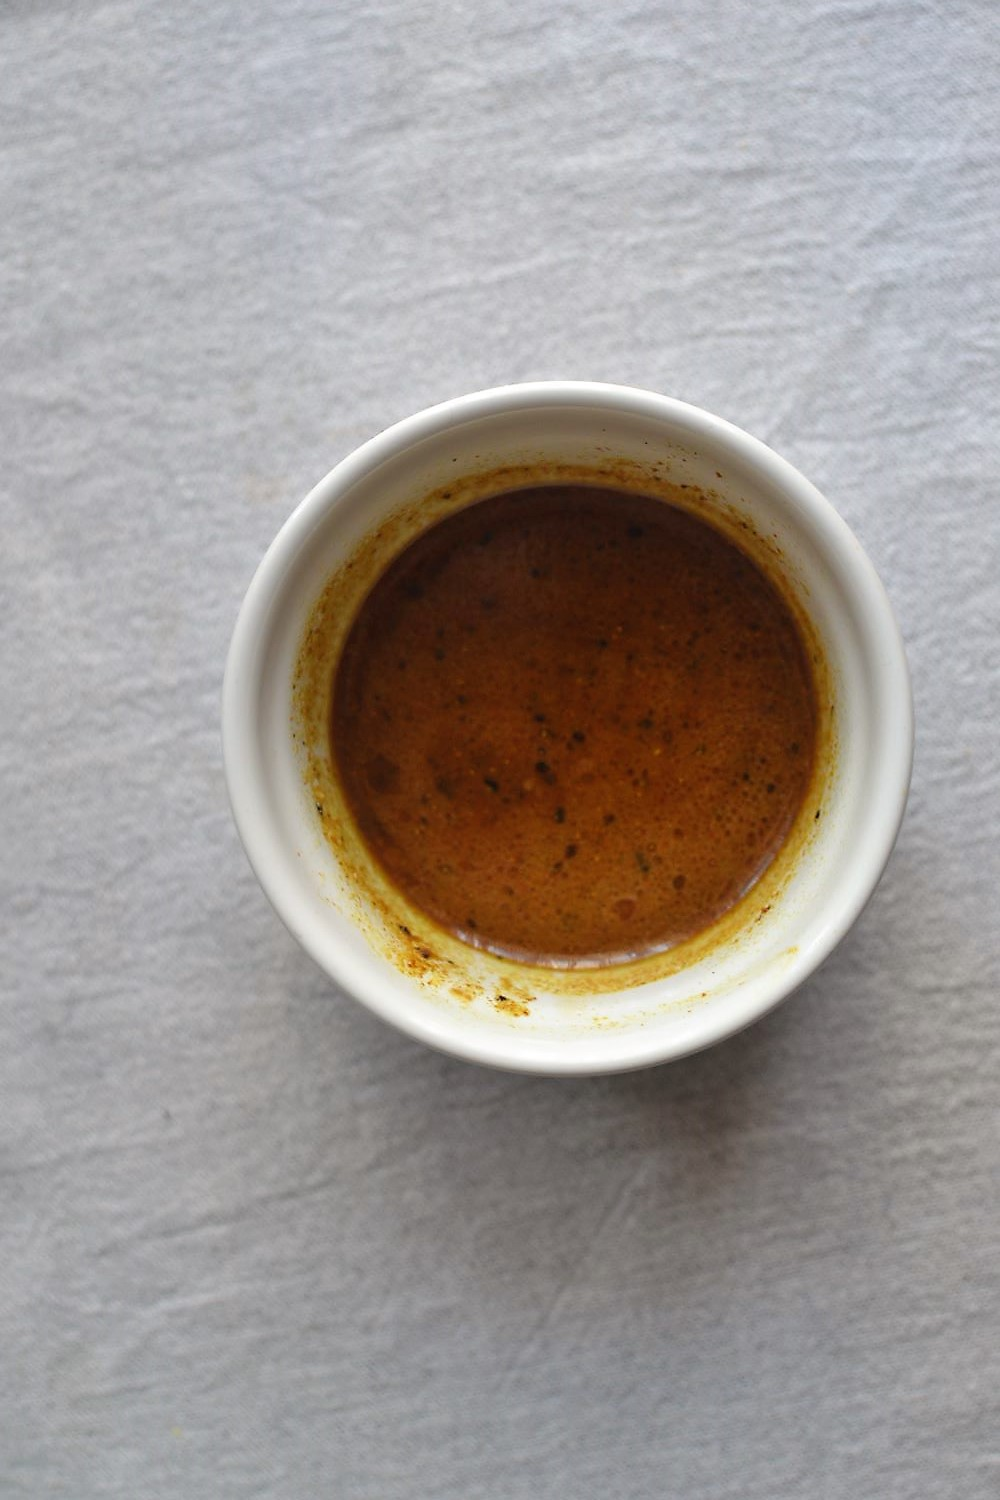 vinegar sauce in a white bowl